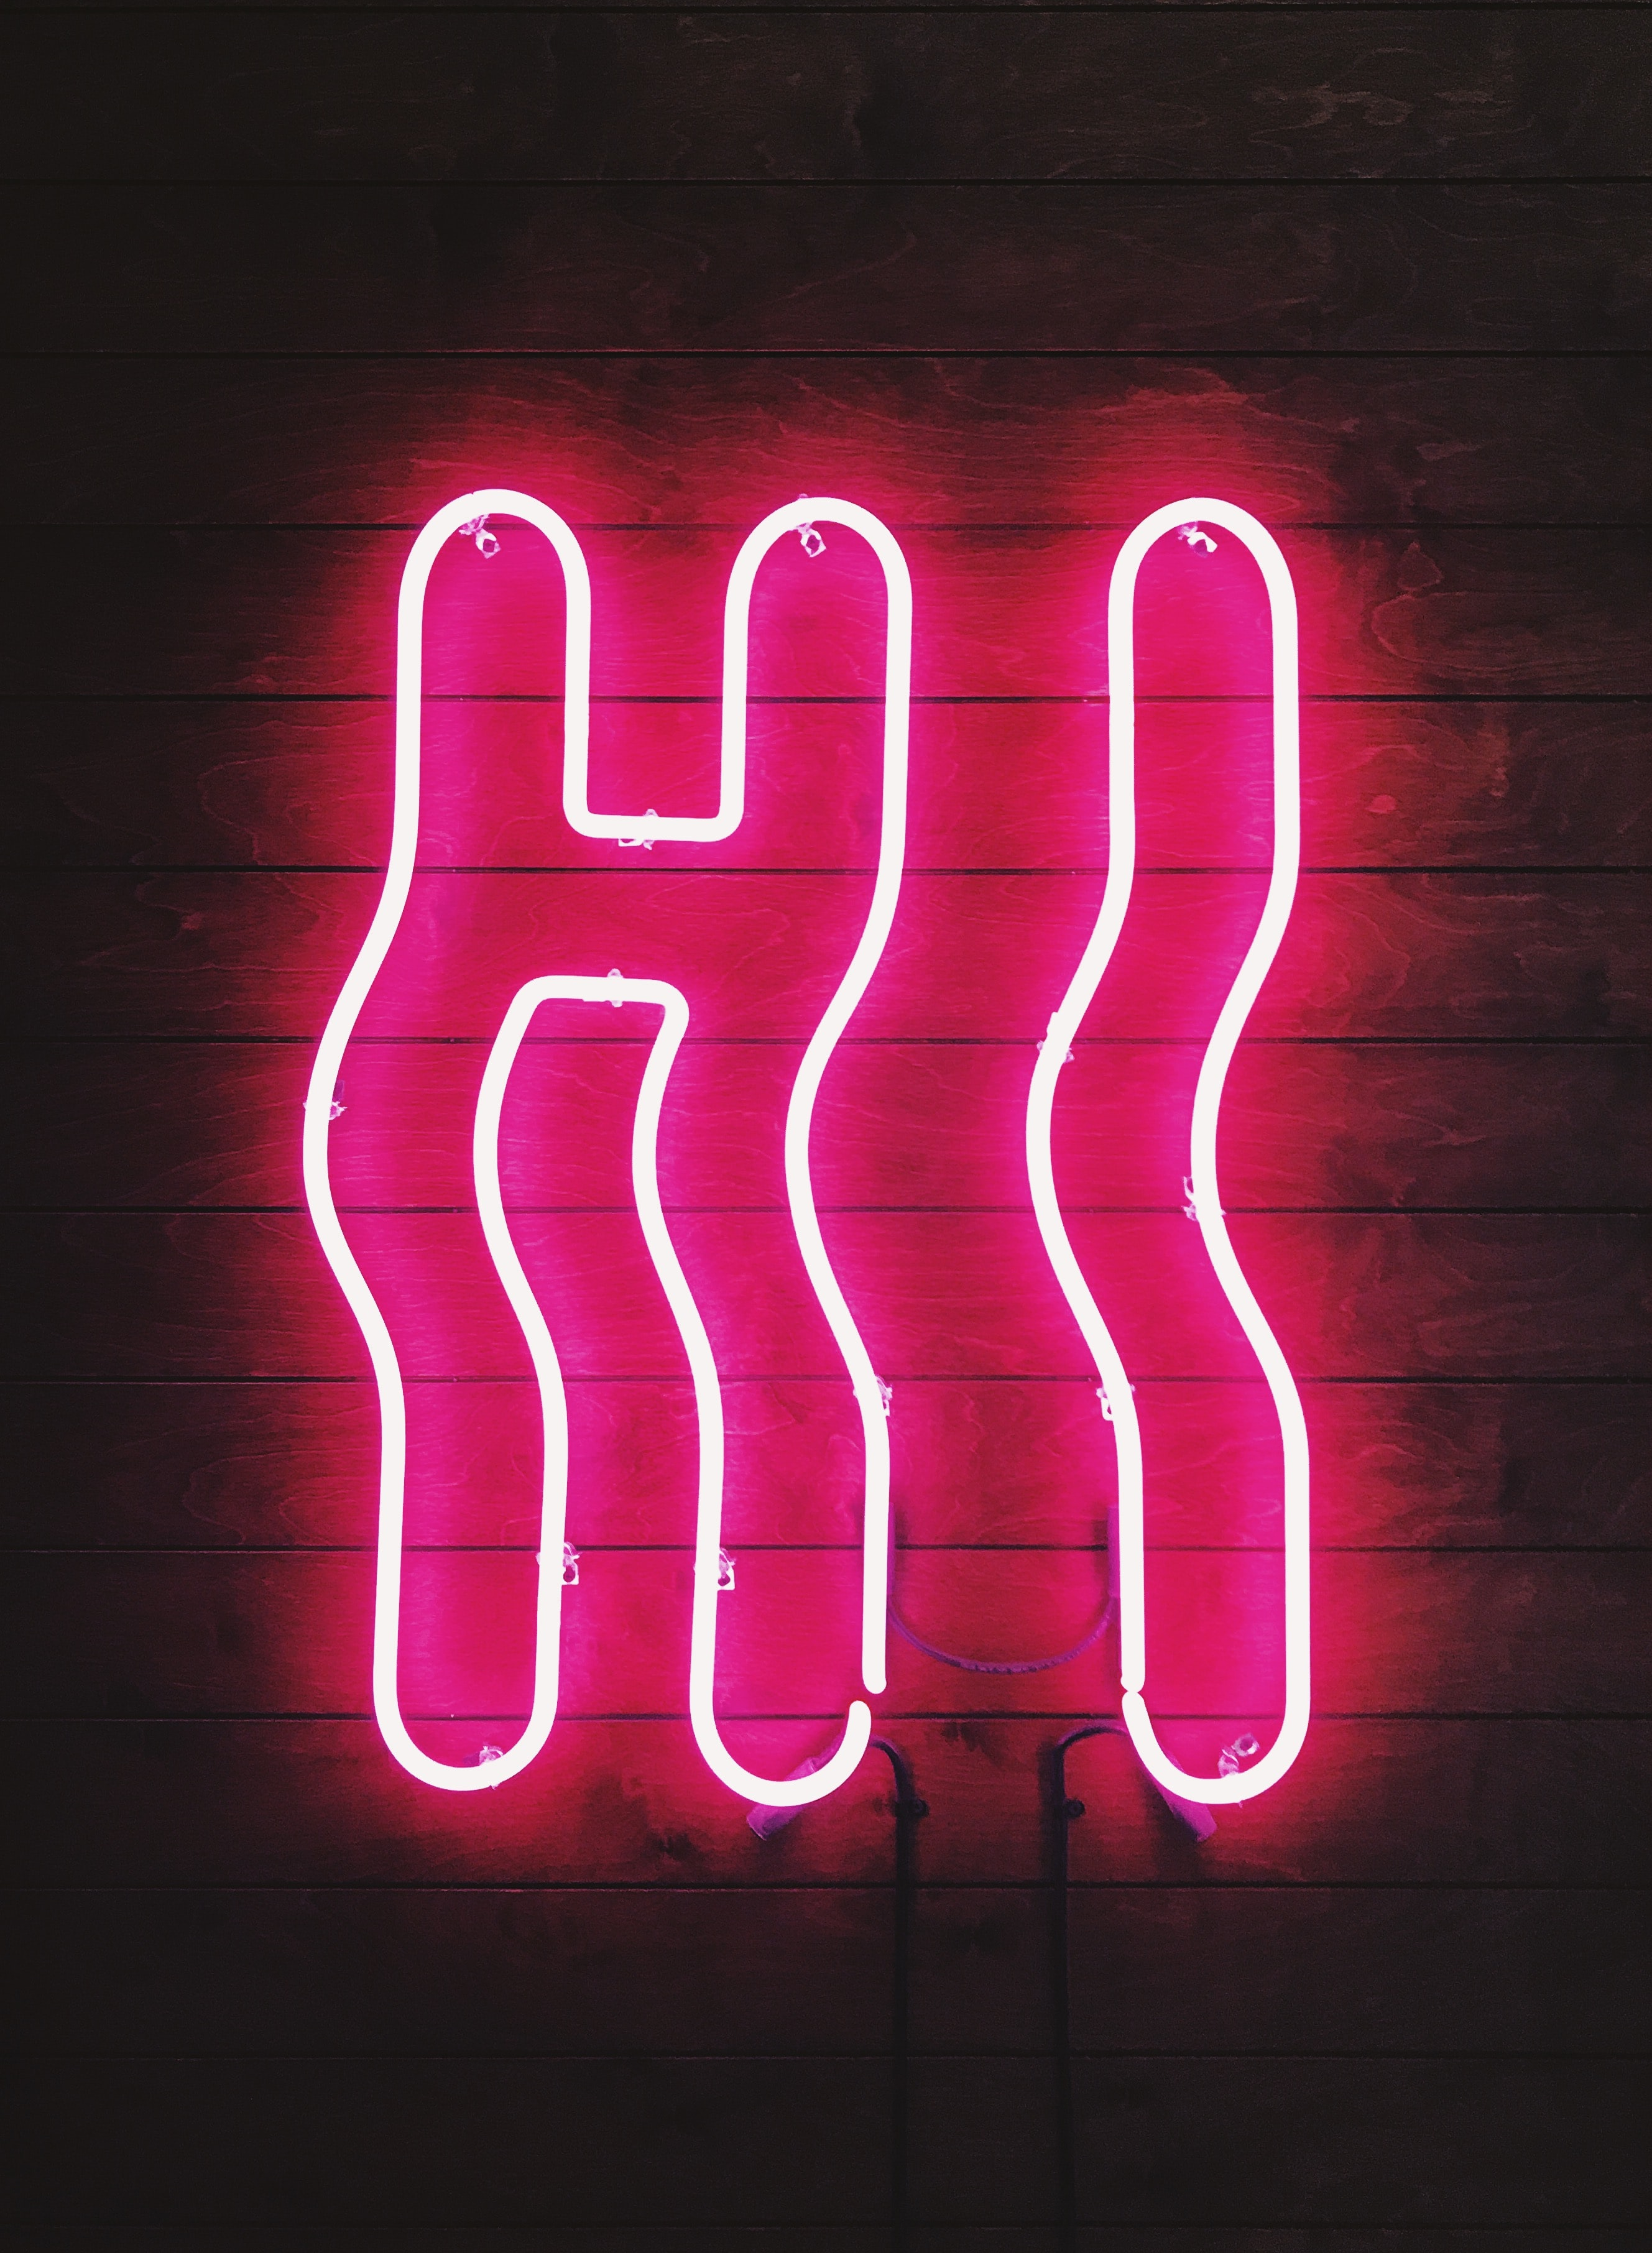 Neon sign, ouf!, wallpaper and funny wallpapers HD photo ...